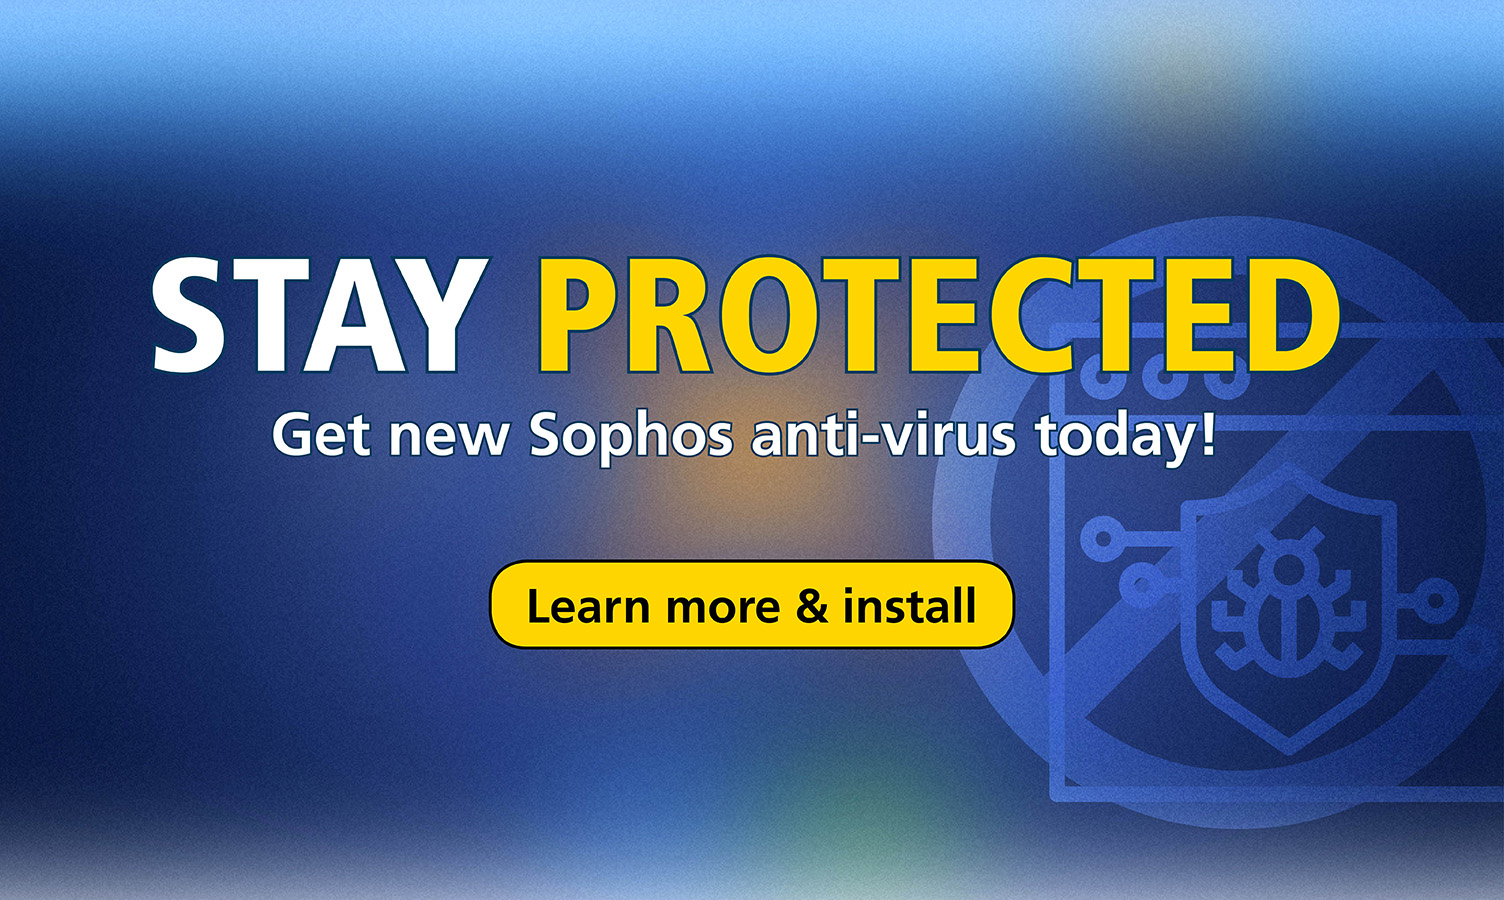 Stay Protected - get Sophos anti-virus today!